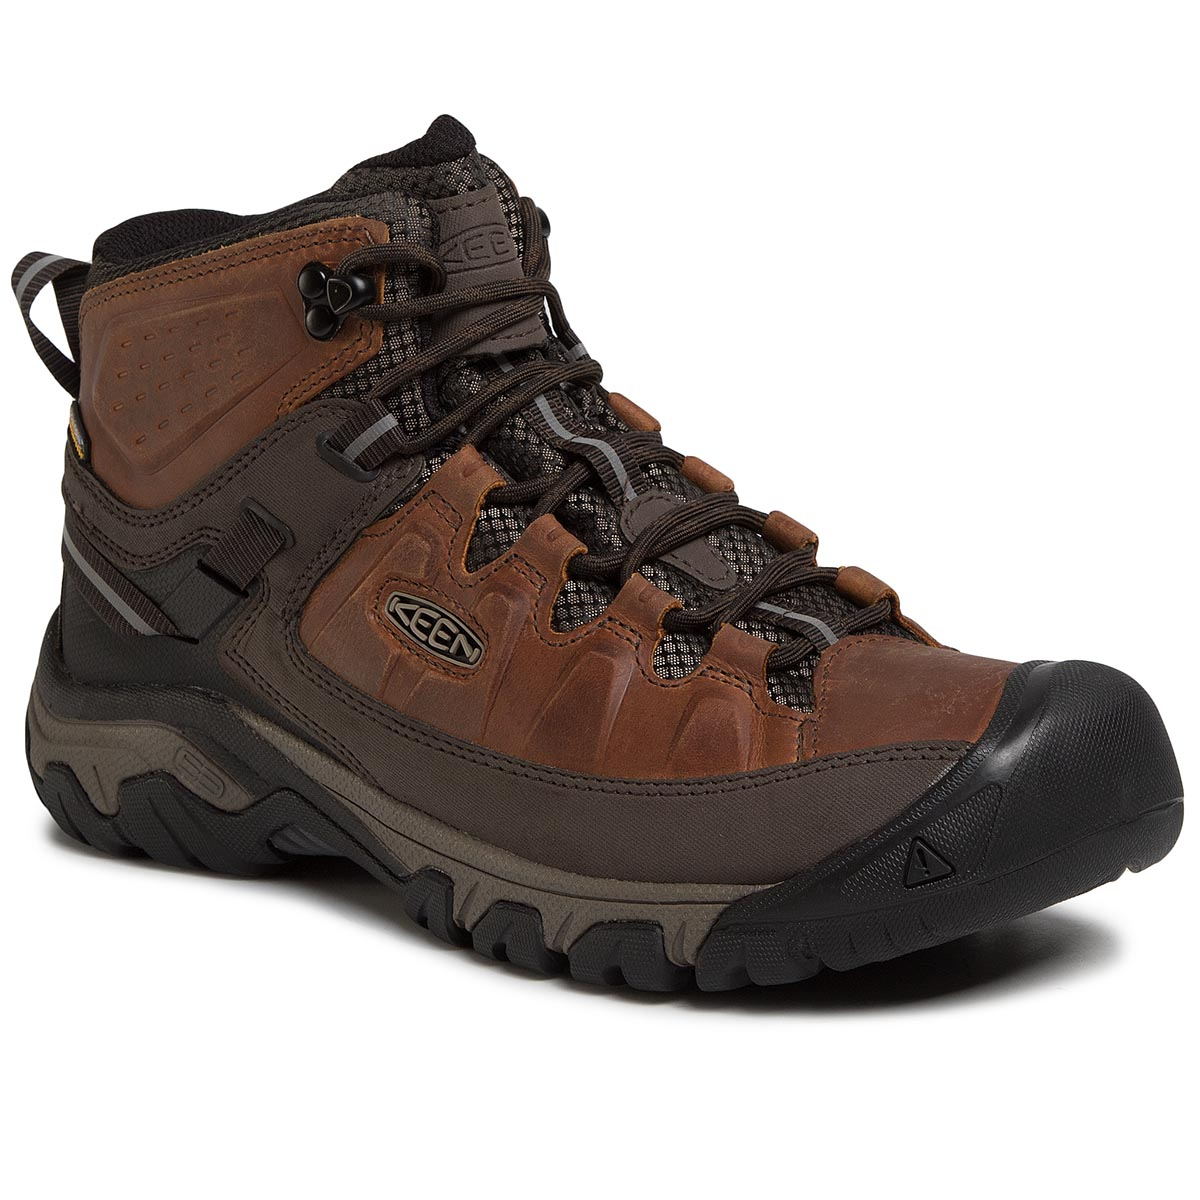 Trekkings Keen - Targhee Iii Mid Wp 1023030 Chestnut/Mulch imagine epantofi.ro 2021